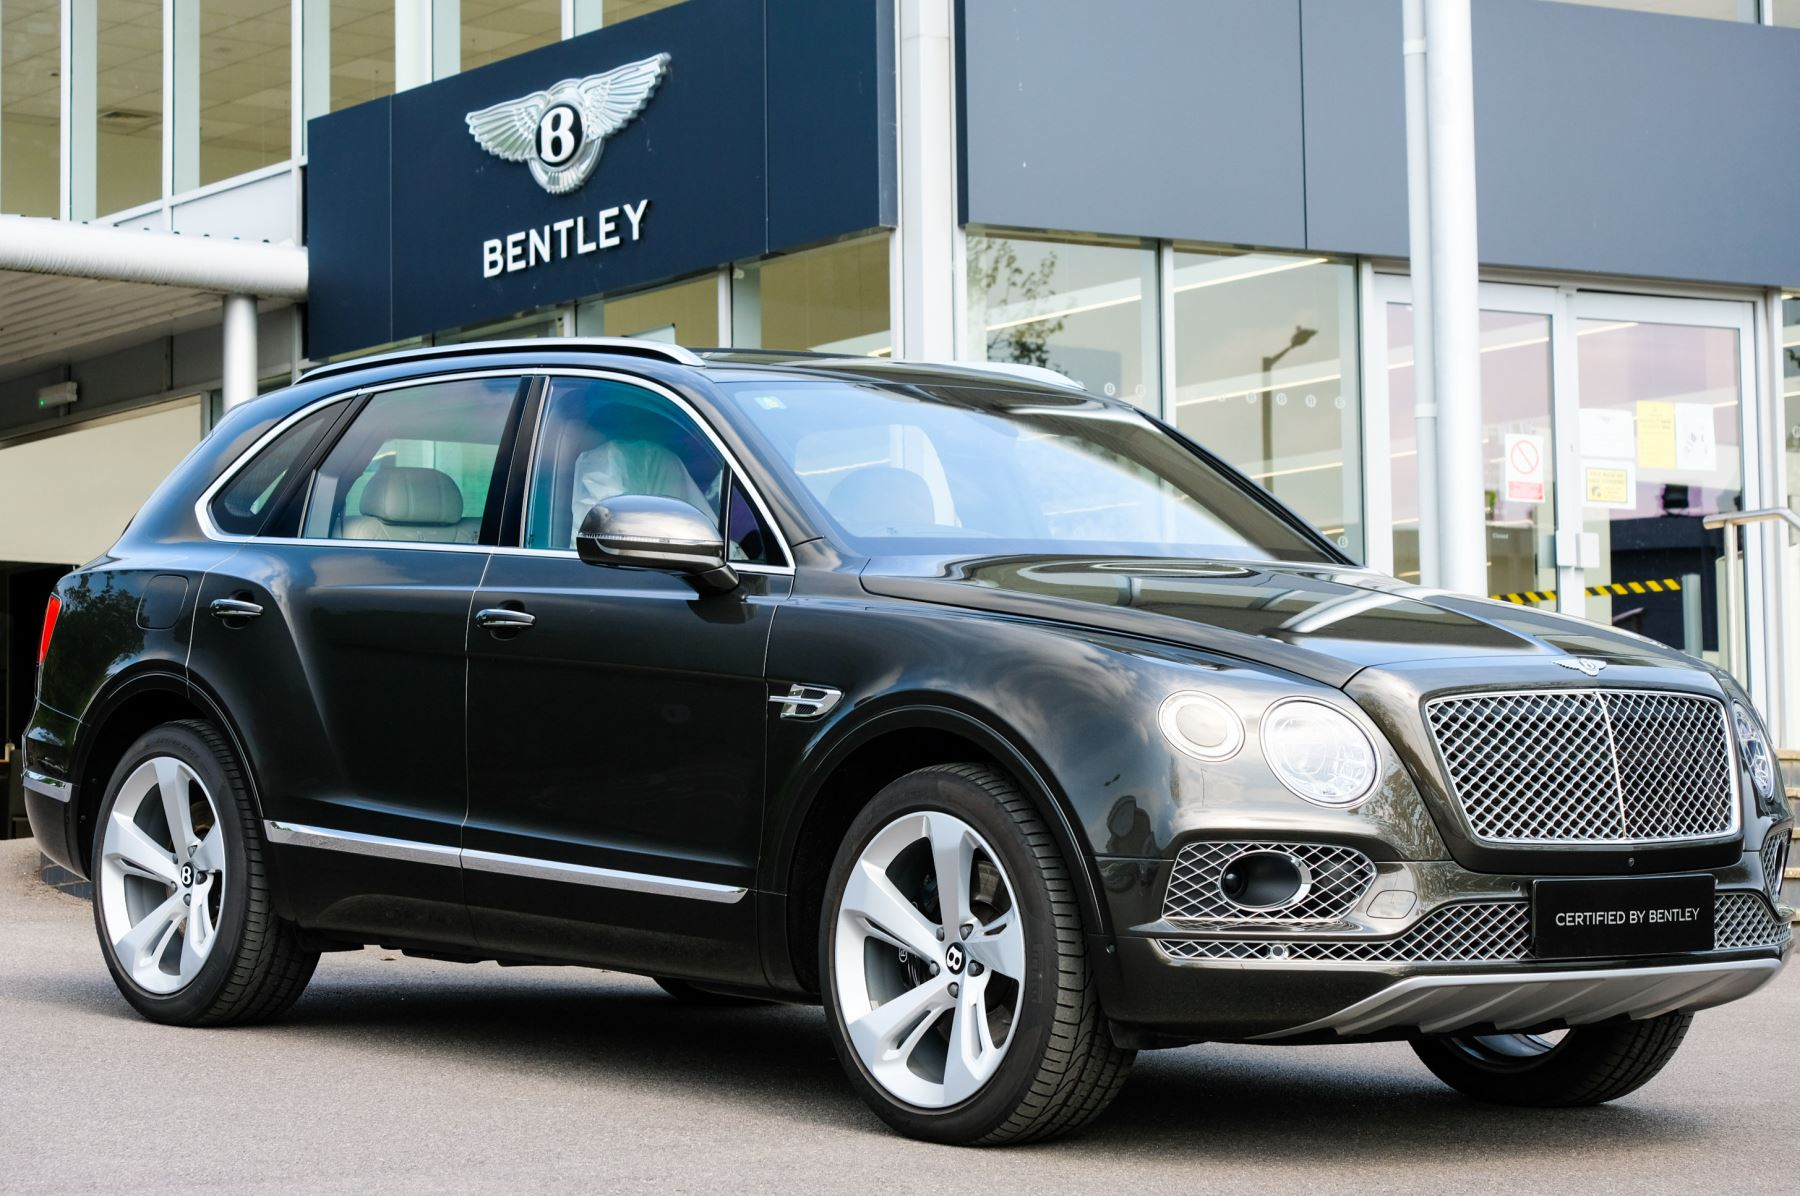 Bentley Bentayga 6.0 W12 - Touring and Sunshine Specification Automatic 5 door Estate